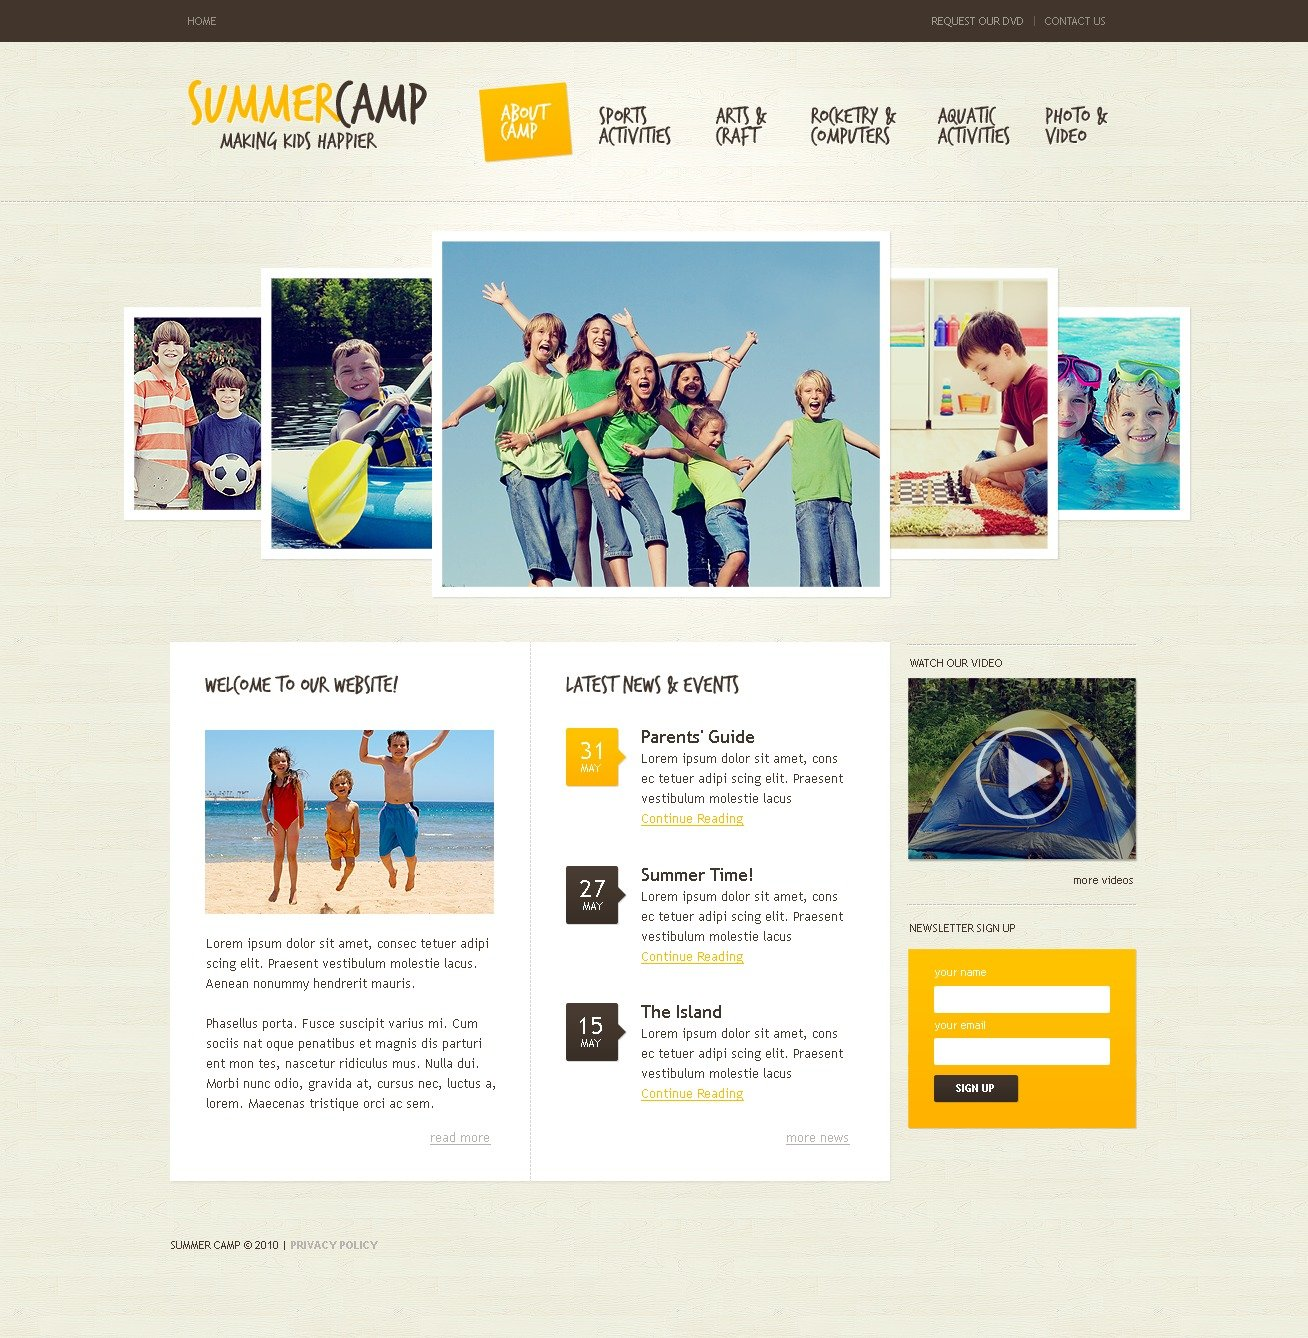 The Summer Camp PSD Design 54128, one of the best PSD templates of its kind (family, travel, most popular, wide, jquery), also known as summer camp PSD template, camper PSD template, camping PSD template, tourism PSD template, equipment PSD template, tents PSD template, campers PSD template, motorhome PSD template, hire PSD template, western PSD template, lakes PSD template, mountains PSD template, mid PSD template, coast PSD template, down PSD template, east PSD template, sunrise PSD template, country PSD template, tourists PSD template, guide PSD template, tips PSD template, regions PSD template, destination PSD template, map PSD template, compass PSD template, info PSD template, statewide PSD template, activity PSD template, gallery PSD template, location PSD template, relaxation PSD template, recreation PSD template, impres and related with summer camp, camper, camping, tourism, equipment, tents, campers, motorhome, hire, western, lakes, mountains, mid, coast, down, east, sunrise, country, tourists, guide, tips, regions, destination, map, compass, info, statewide, activity, gallery, location, relaxation, recreation, impres, etc.